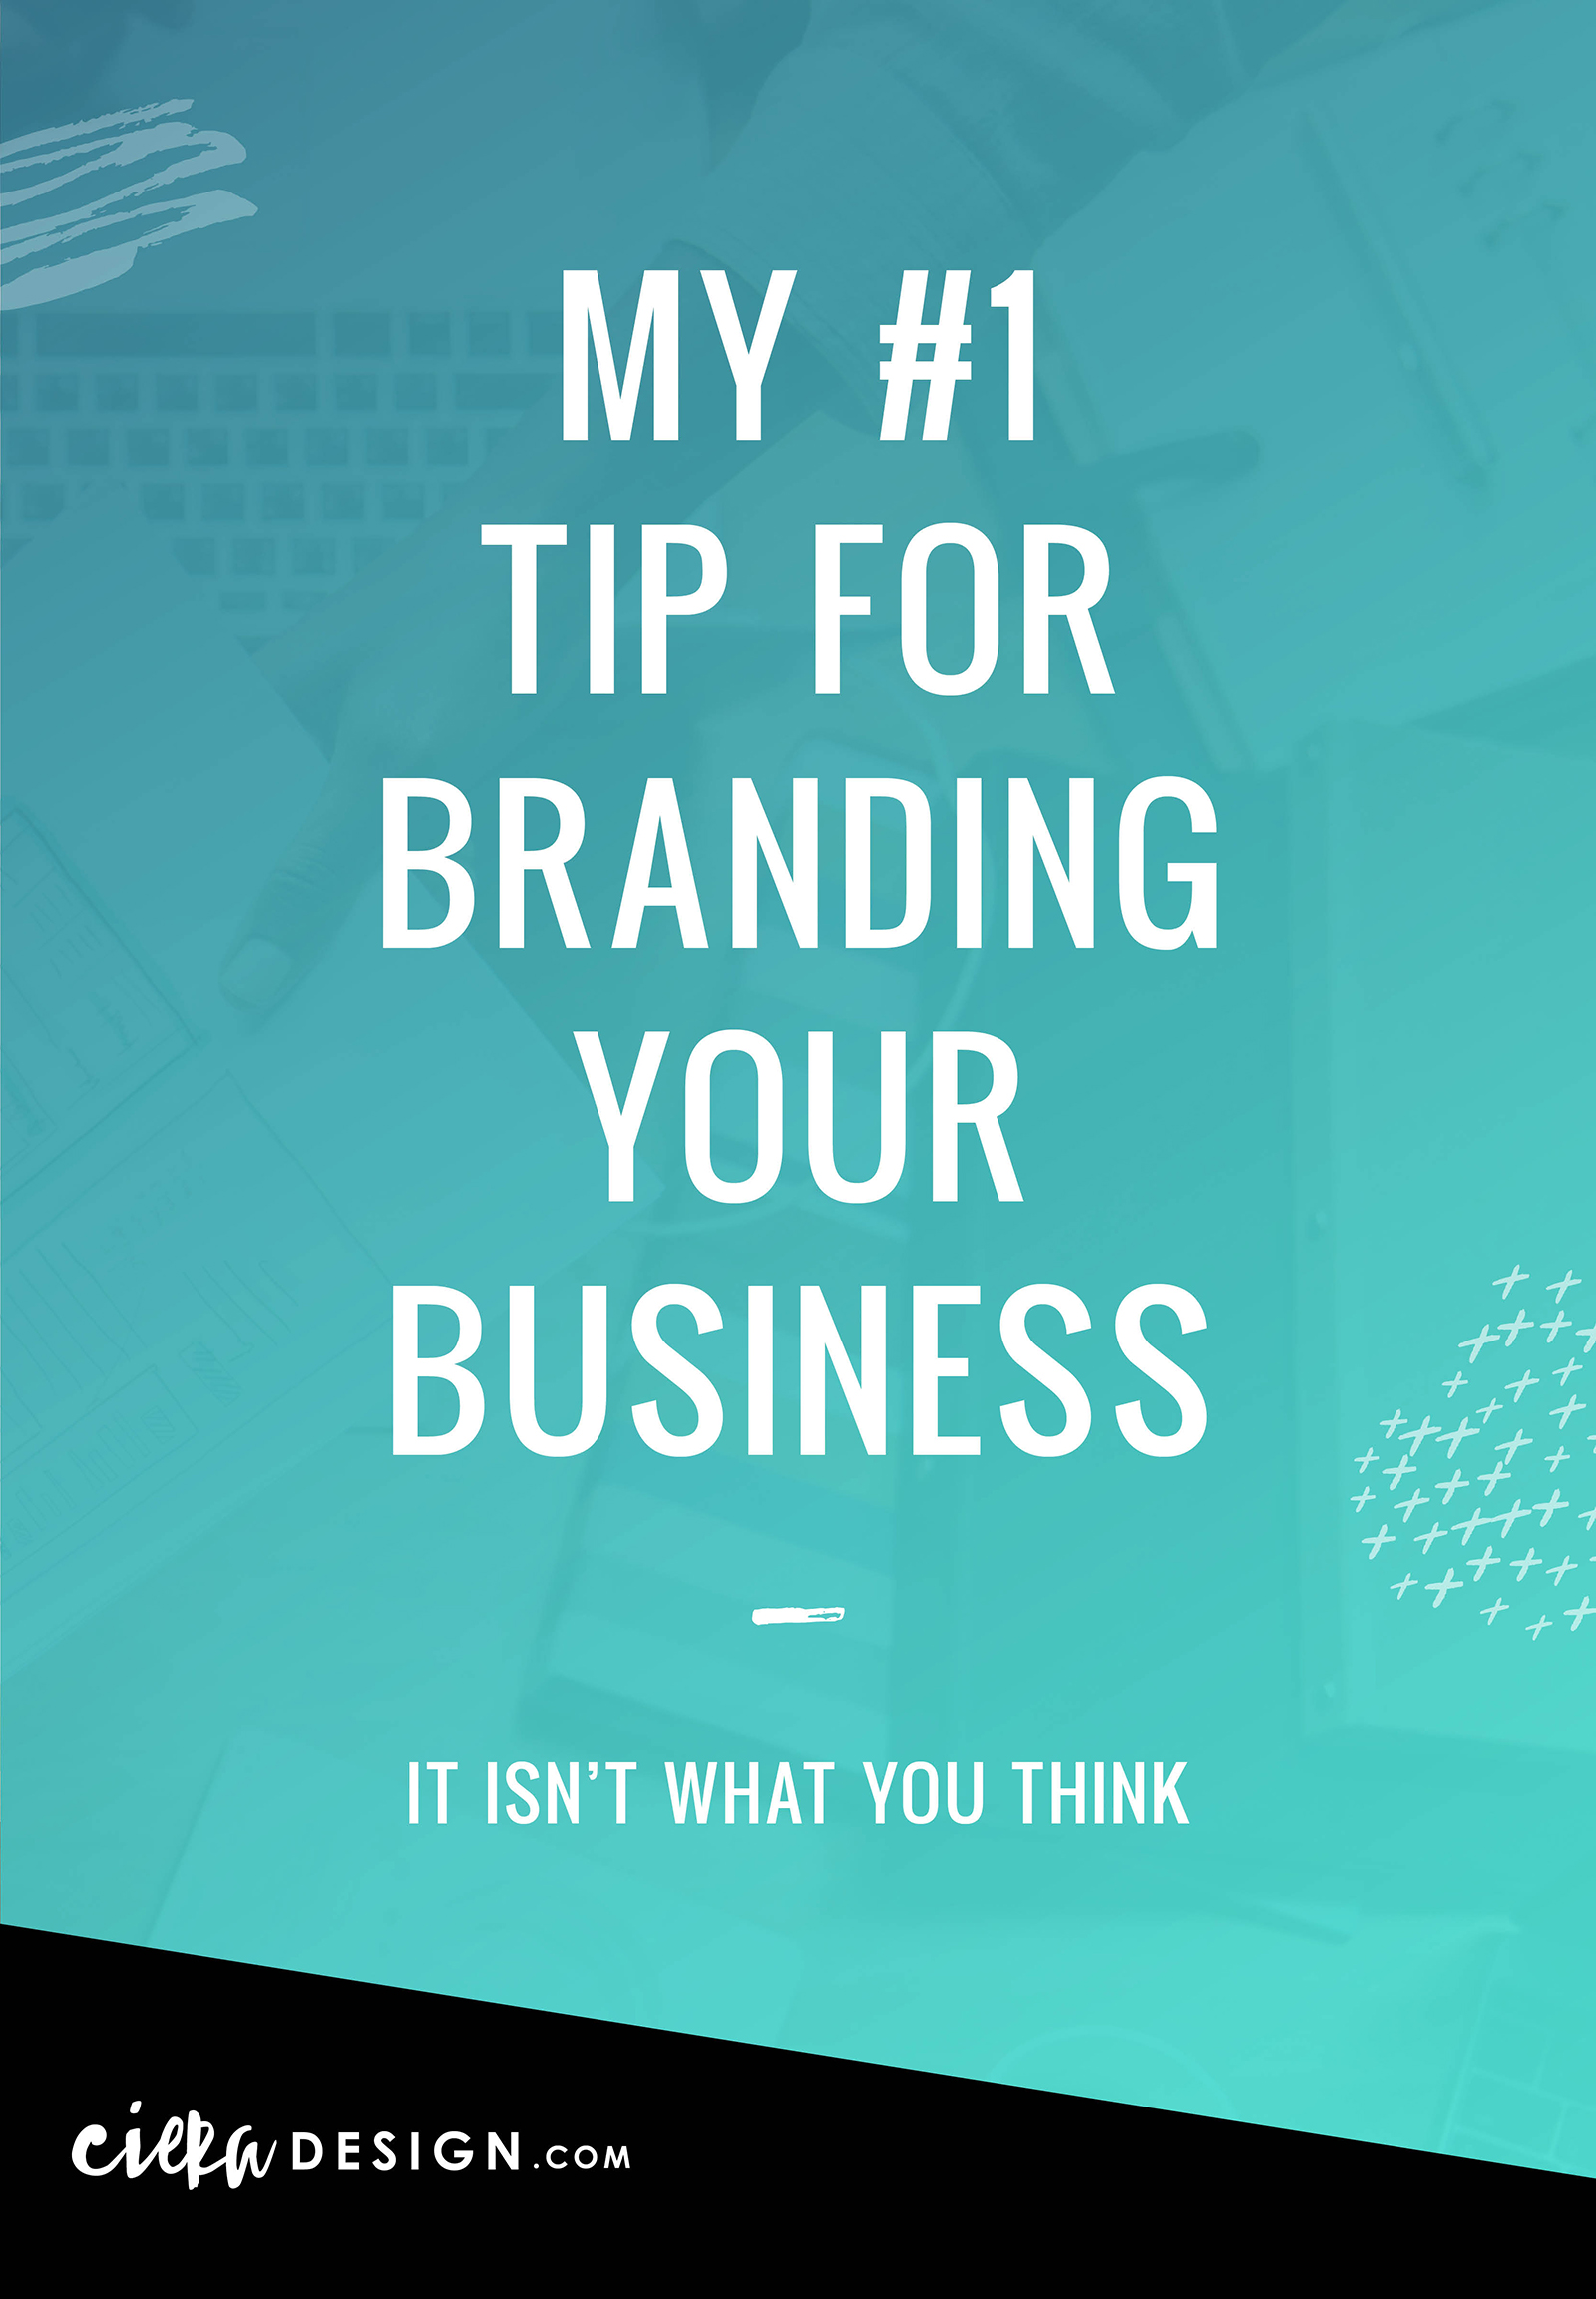 """I was recently asked, """"What is your best tip for branding a business?"""" And you may be surprised that my answer was not """"hire a designer to create an amazing logo"""" or wasn't really design related at all...⠀"""